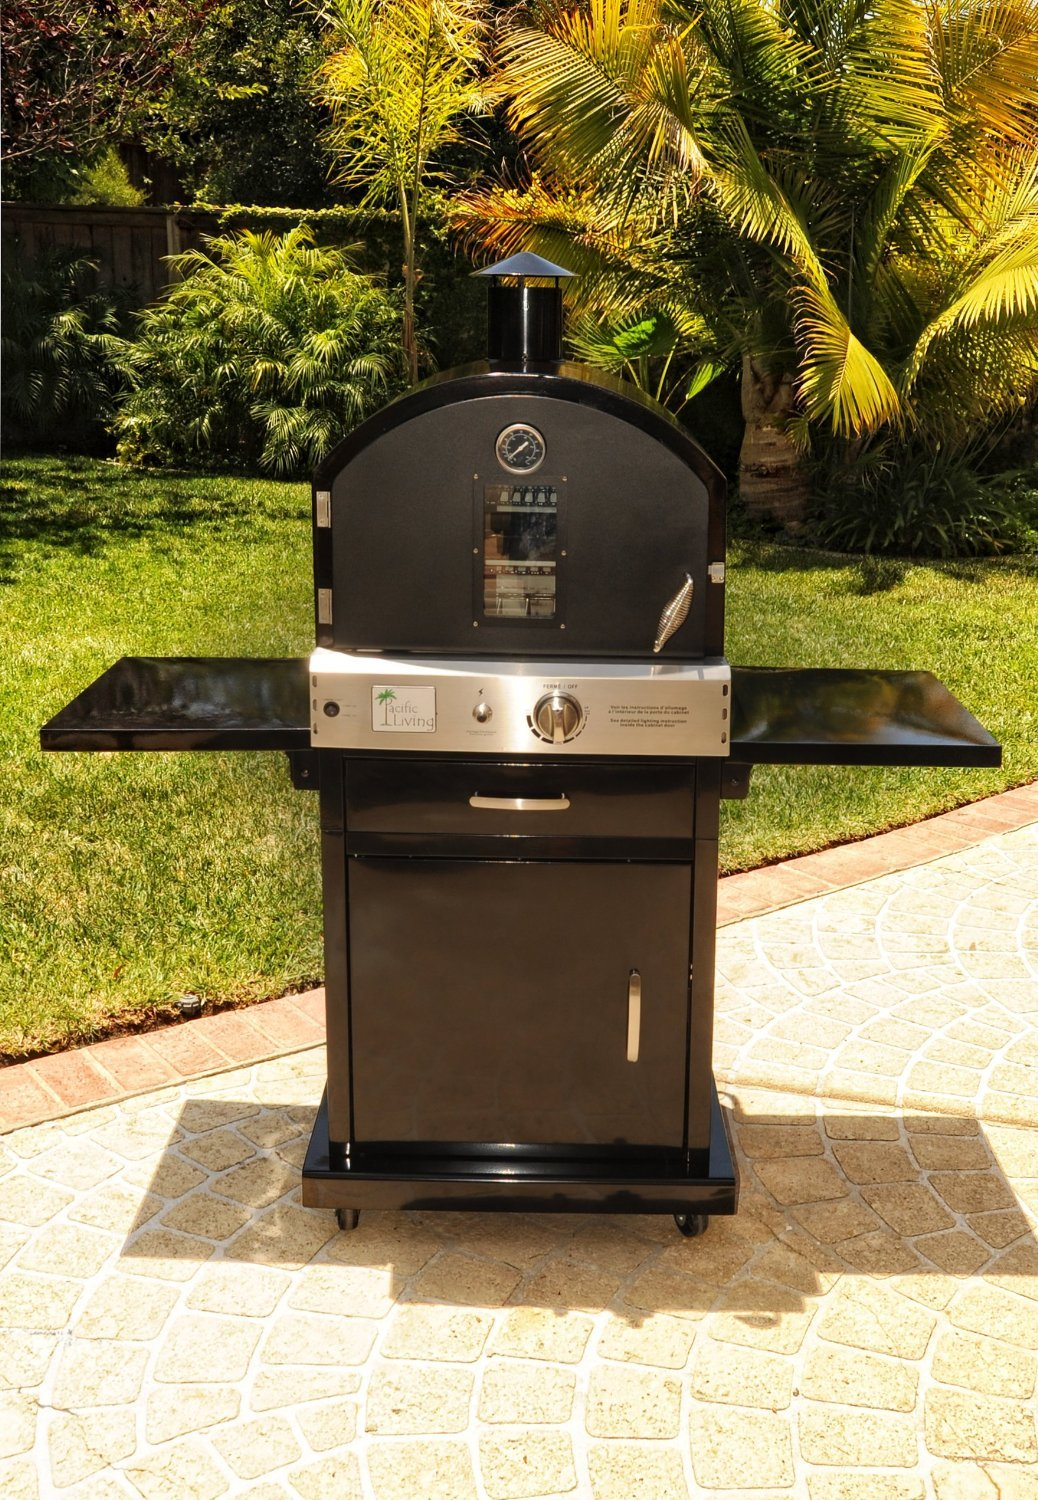 Amazon.com: Pacific Living Outdoor Large Capacity Gas Oven With Pizza  Stone, Smoker Box And Mobile Cart, Black Powder Coat: Garden U0026 Outdoor